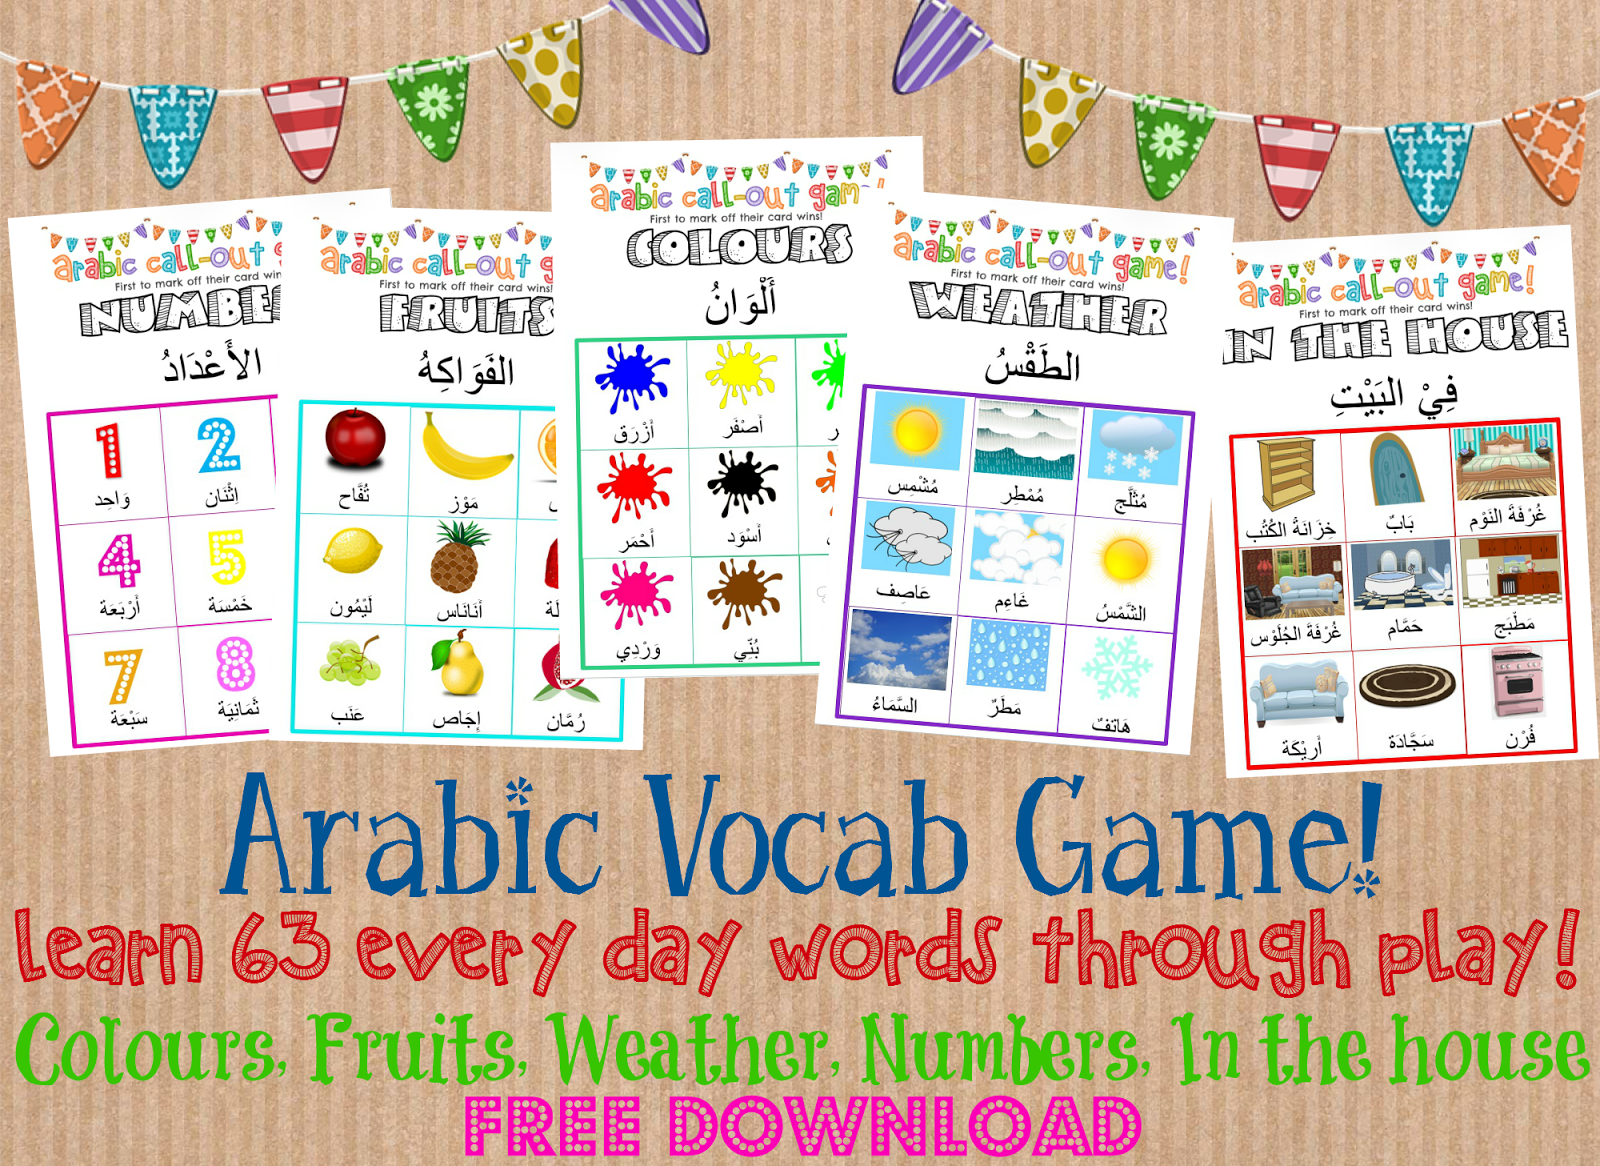 kids arabic vocab game with free download to print at home